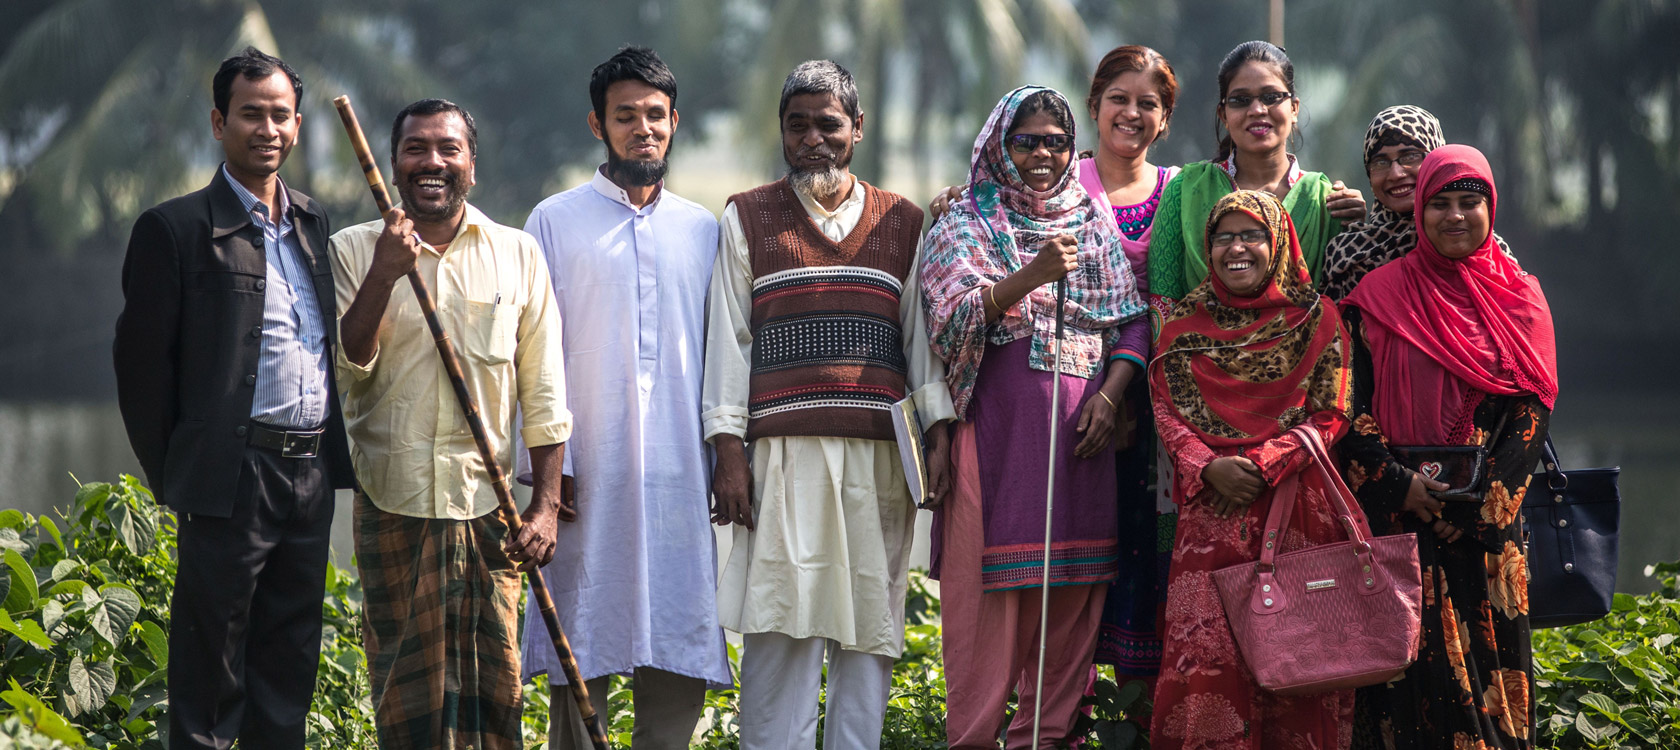 Members of a disabled persons organisation from Bangladesh standing in a row outside.